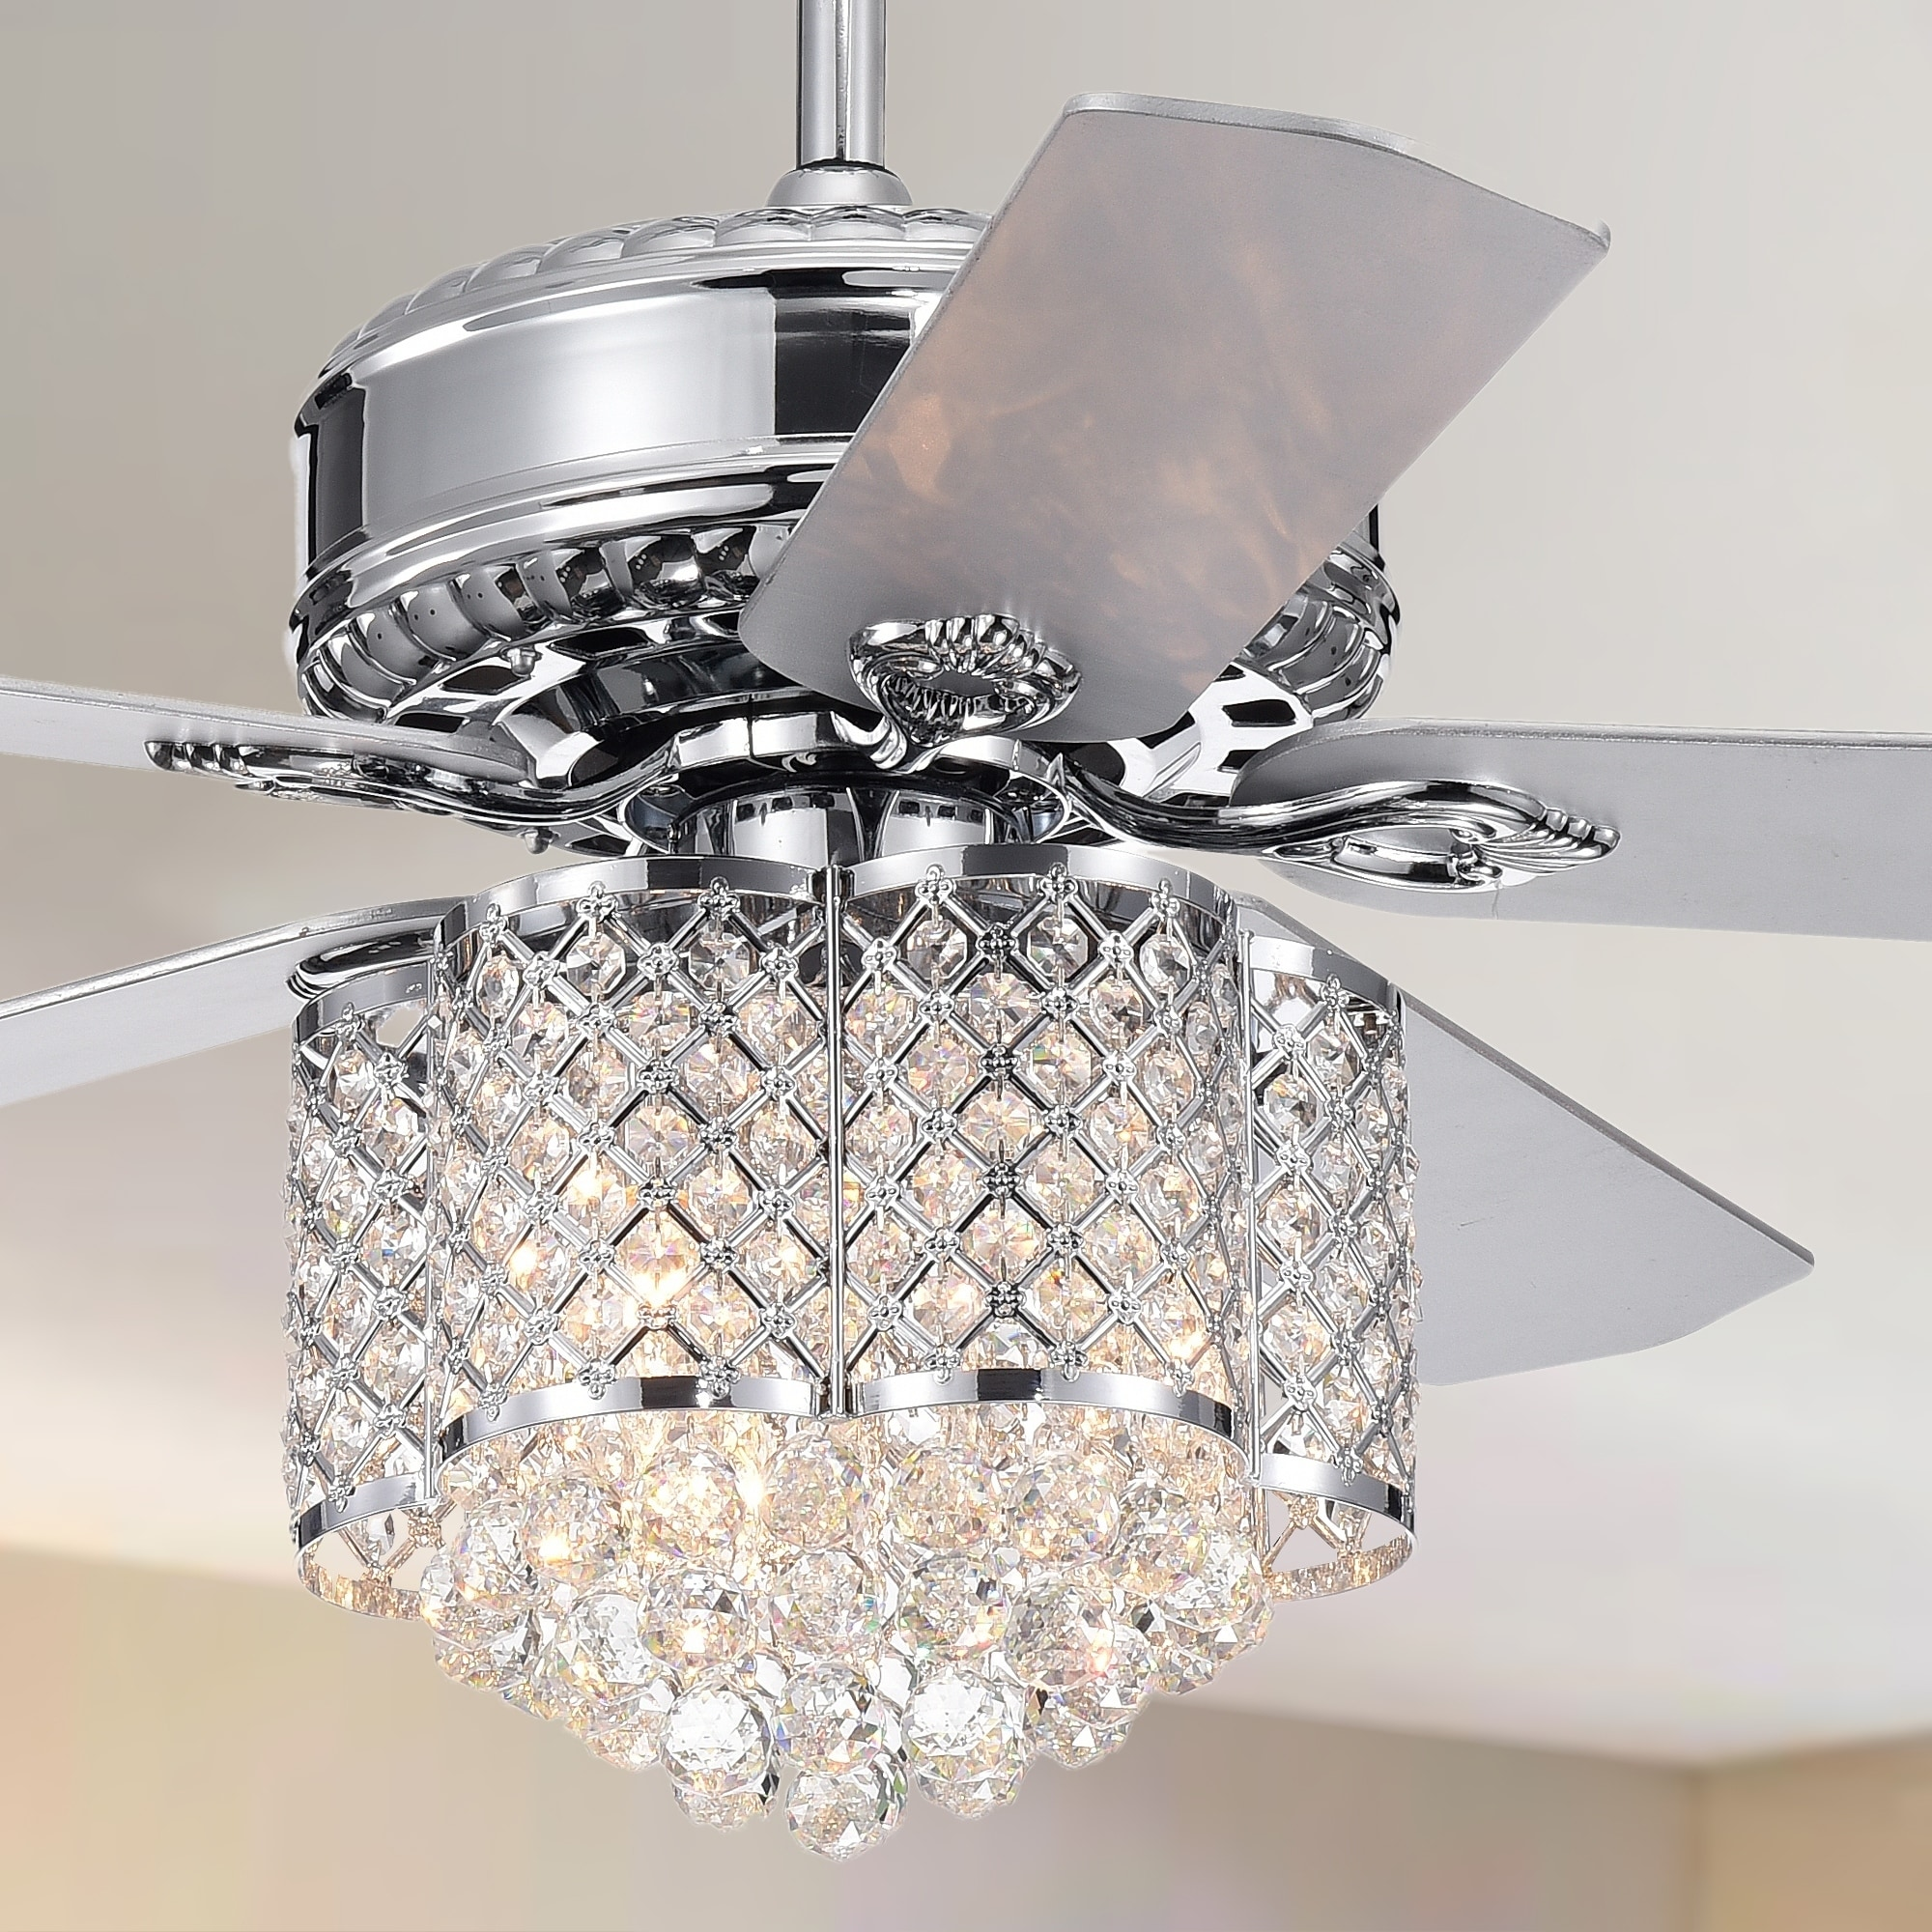 Ceiling Lights & Fans Lights & Lighting Crystal Ceiling Fan Led Ceiling Fan Lamp 32inch 3 Leaf With 2 Size Rod For Livingroom Bedroom Dinning Room